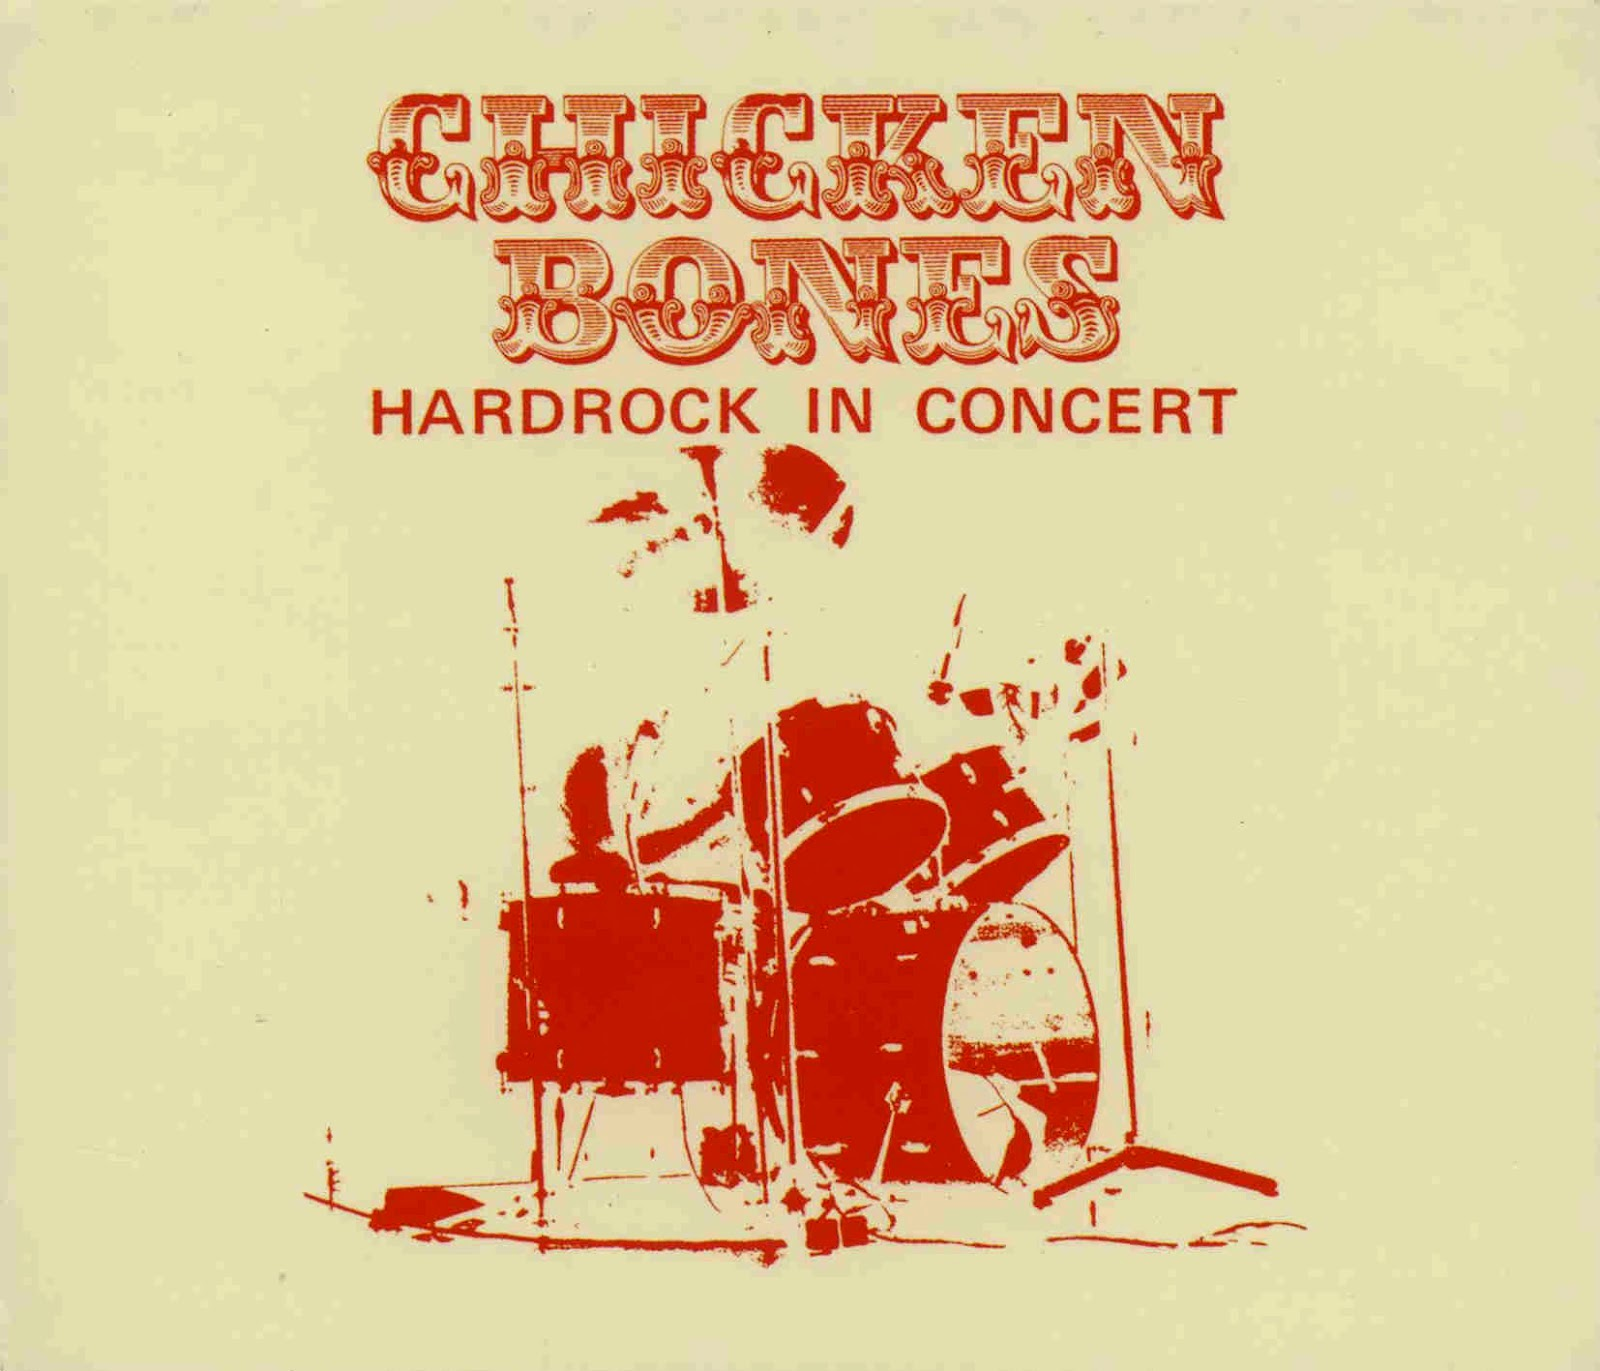 Chicken Bones - Hardrock In Concert LP (1976)